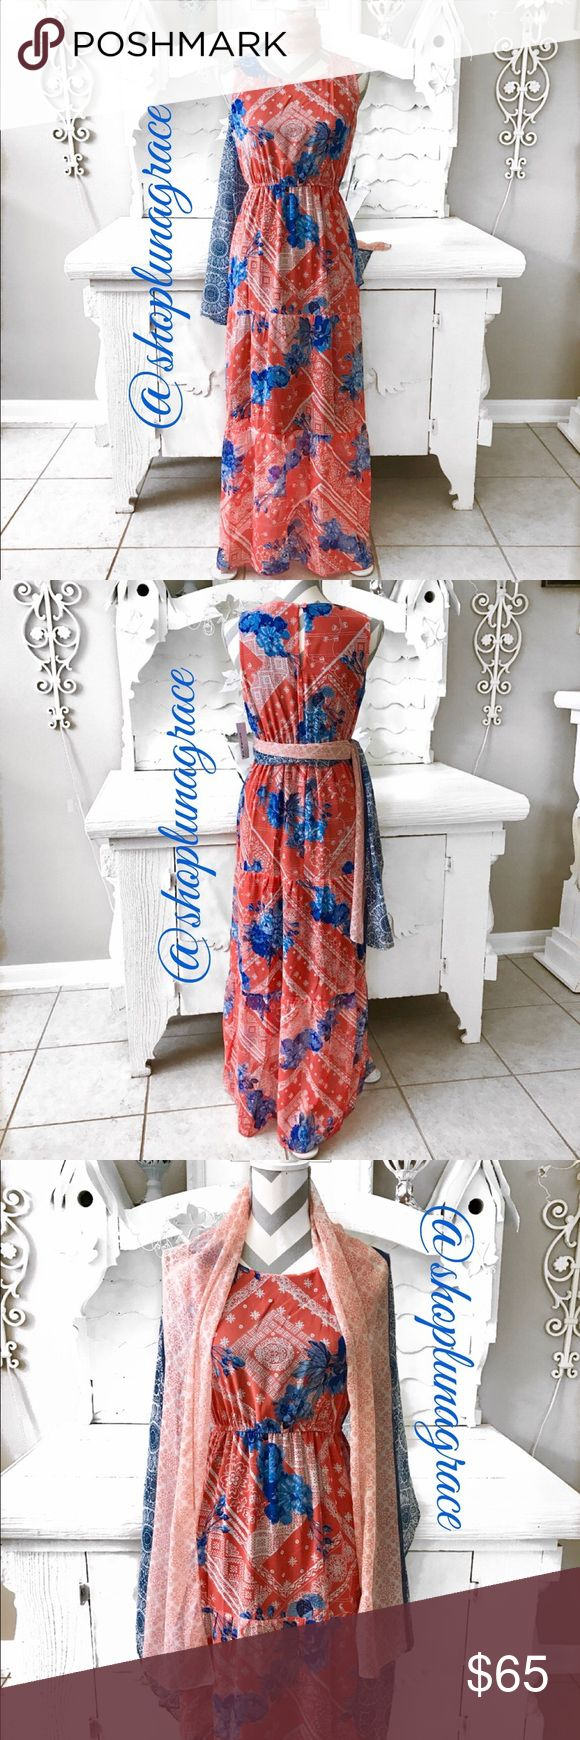 New🌞 Floral Maxi Dress Hello warm weather days & nights! This maxi dress is gorgeous colors of coral/blues. Gathered under the bust with a tier beneath & another lightly gathered tier. I found the scarf, wrap separately and it's stunning with the dress! Use it around your neck, as a sash around your waist or wear it as a wrap on a cool night! Has an under lining. NWT En Focus Dresses Maxi